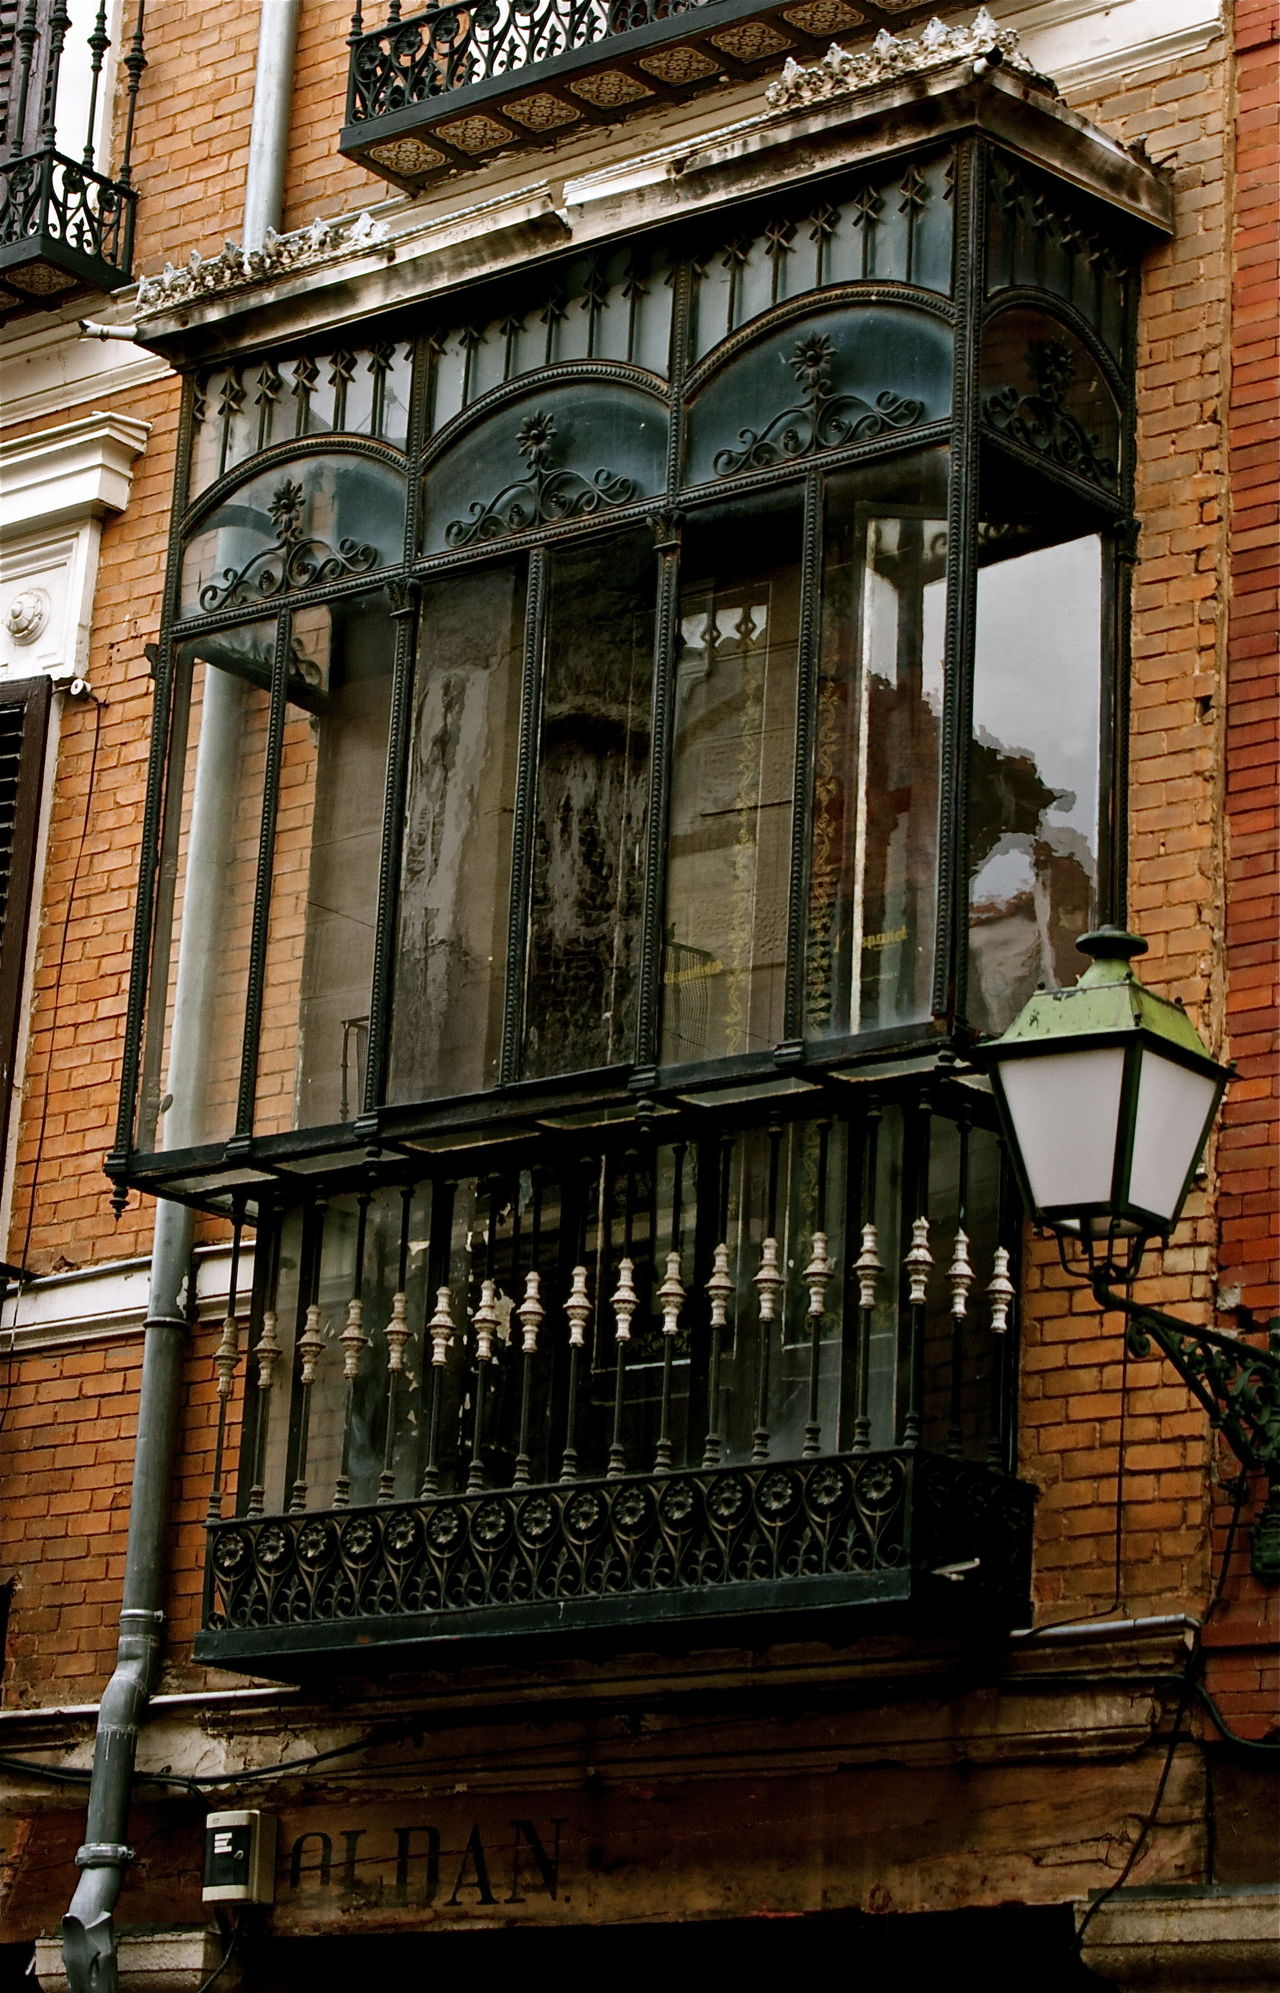 Alcalá De Henares. (Madrid) Architecture Balcony Black Color Brick Building Building Building Exterior Built Structure City Decoration Elegance Decoration Façade Glasses Iron Kvission Low Angle View Mónica Nogueira. Nostalgic  Outdoors SPAIN Traditional Culture Travel Destinations Vintage Decoration Window The Architect - 2016 EyeEm Awards